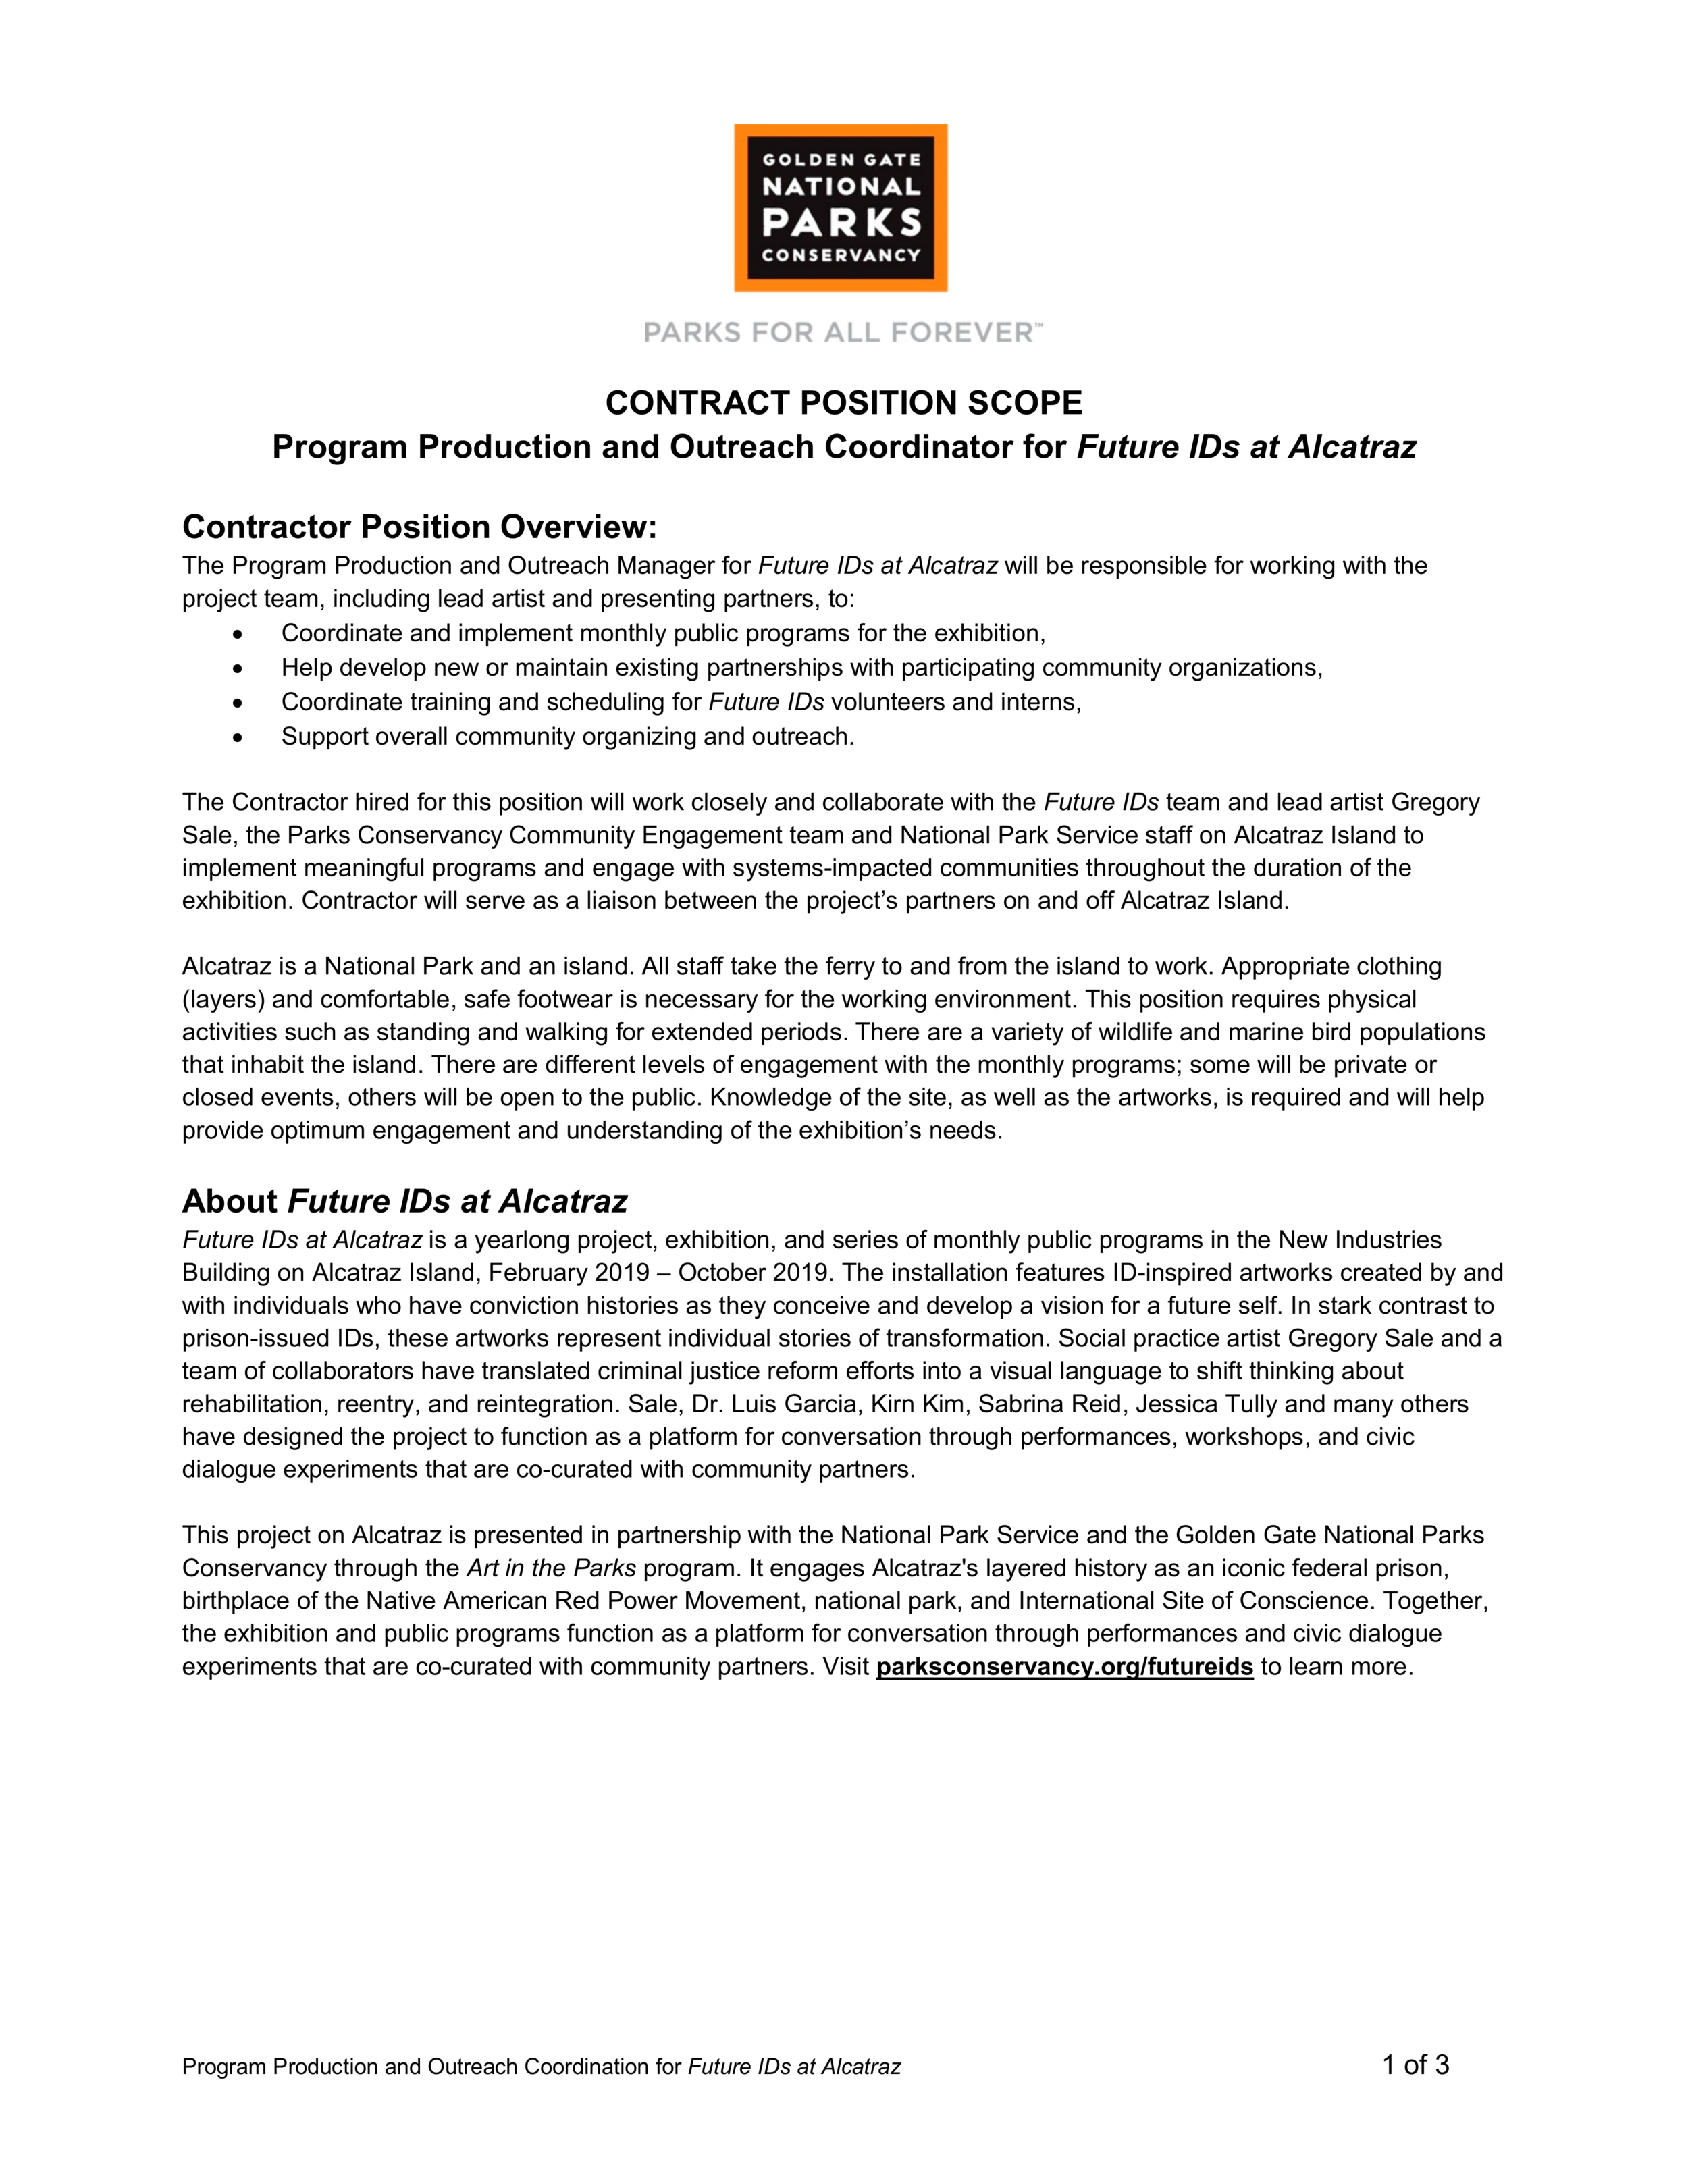 Program Production and Outreach Coordinator for Future IDs at Alcatraz (1).png